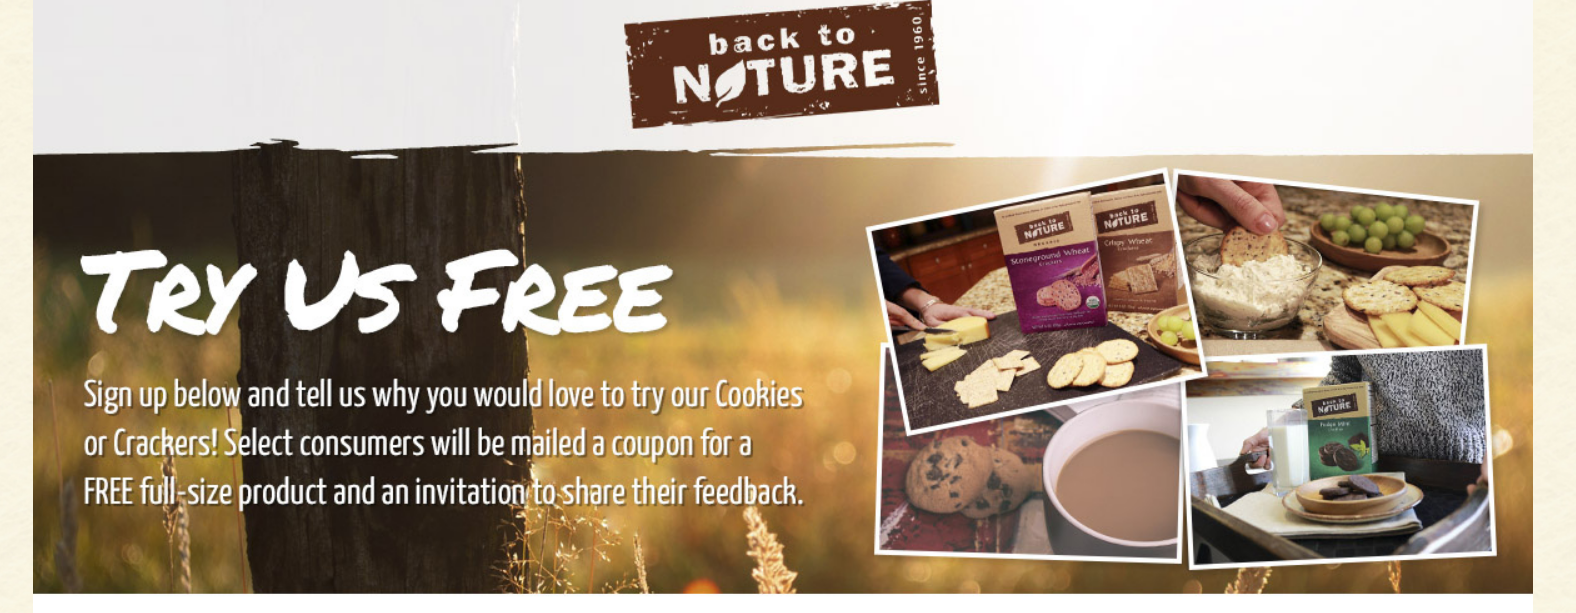 Free Full Size Box Of Back to Nature Crackers or Cookies